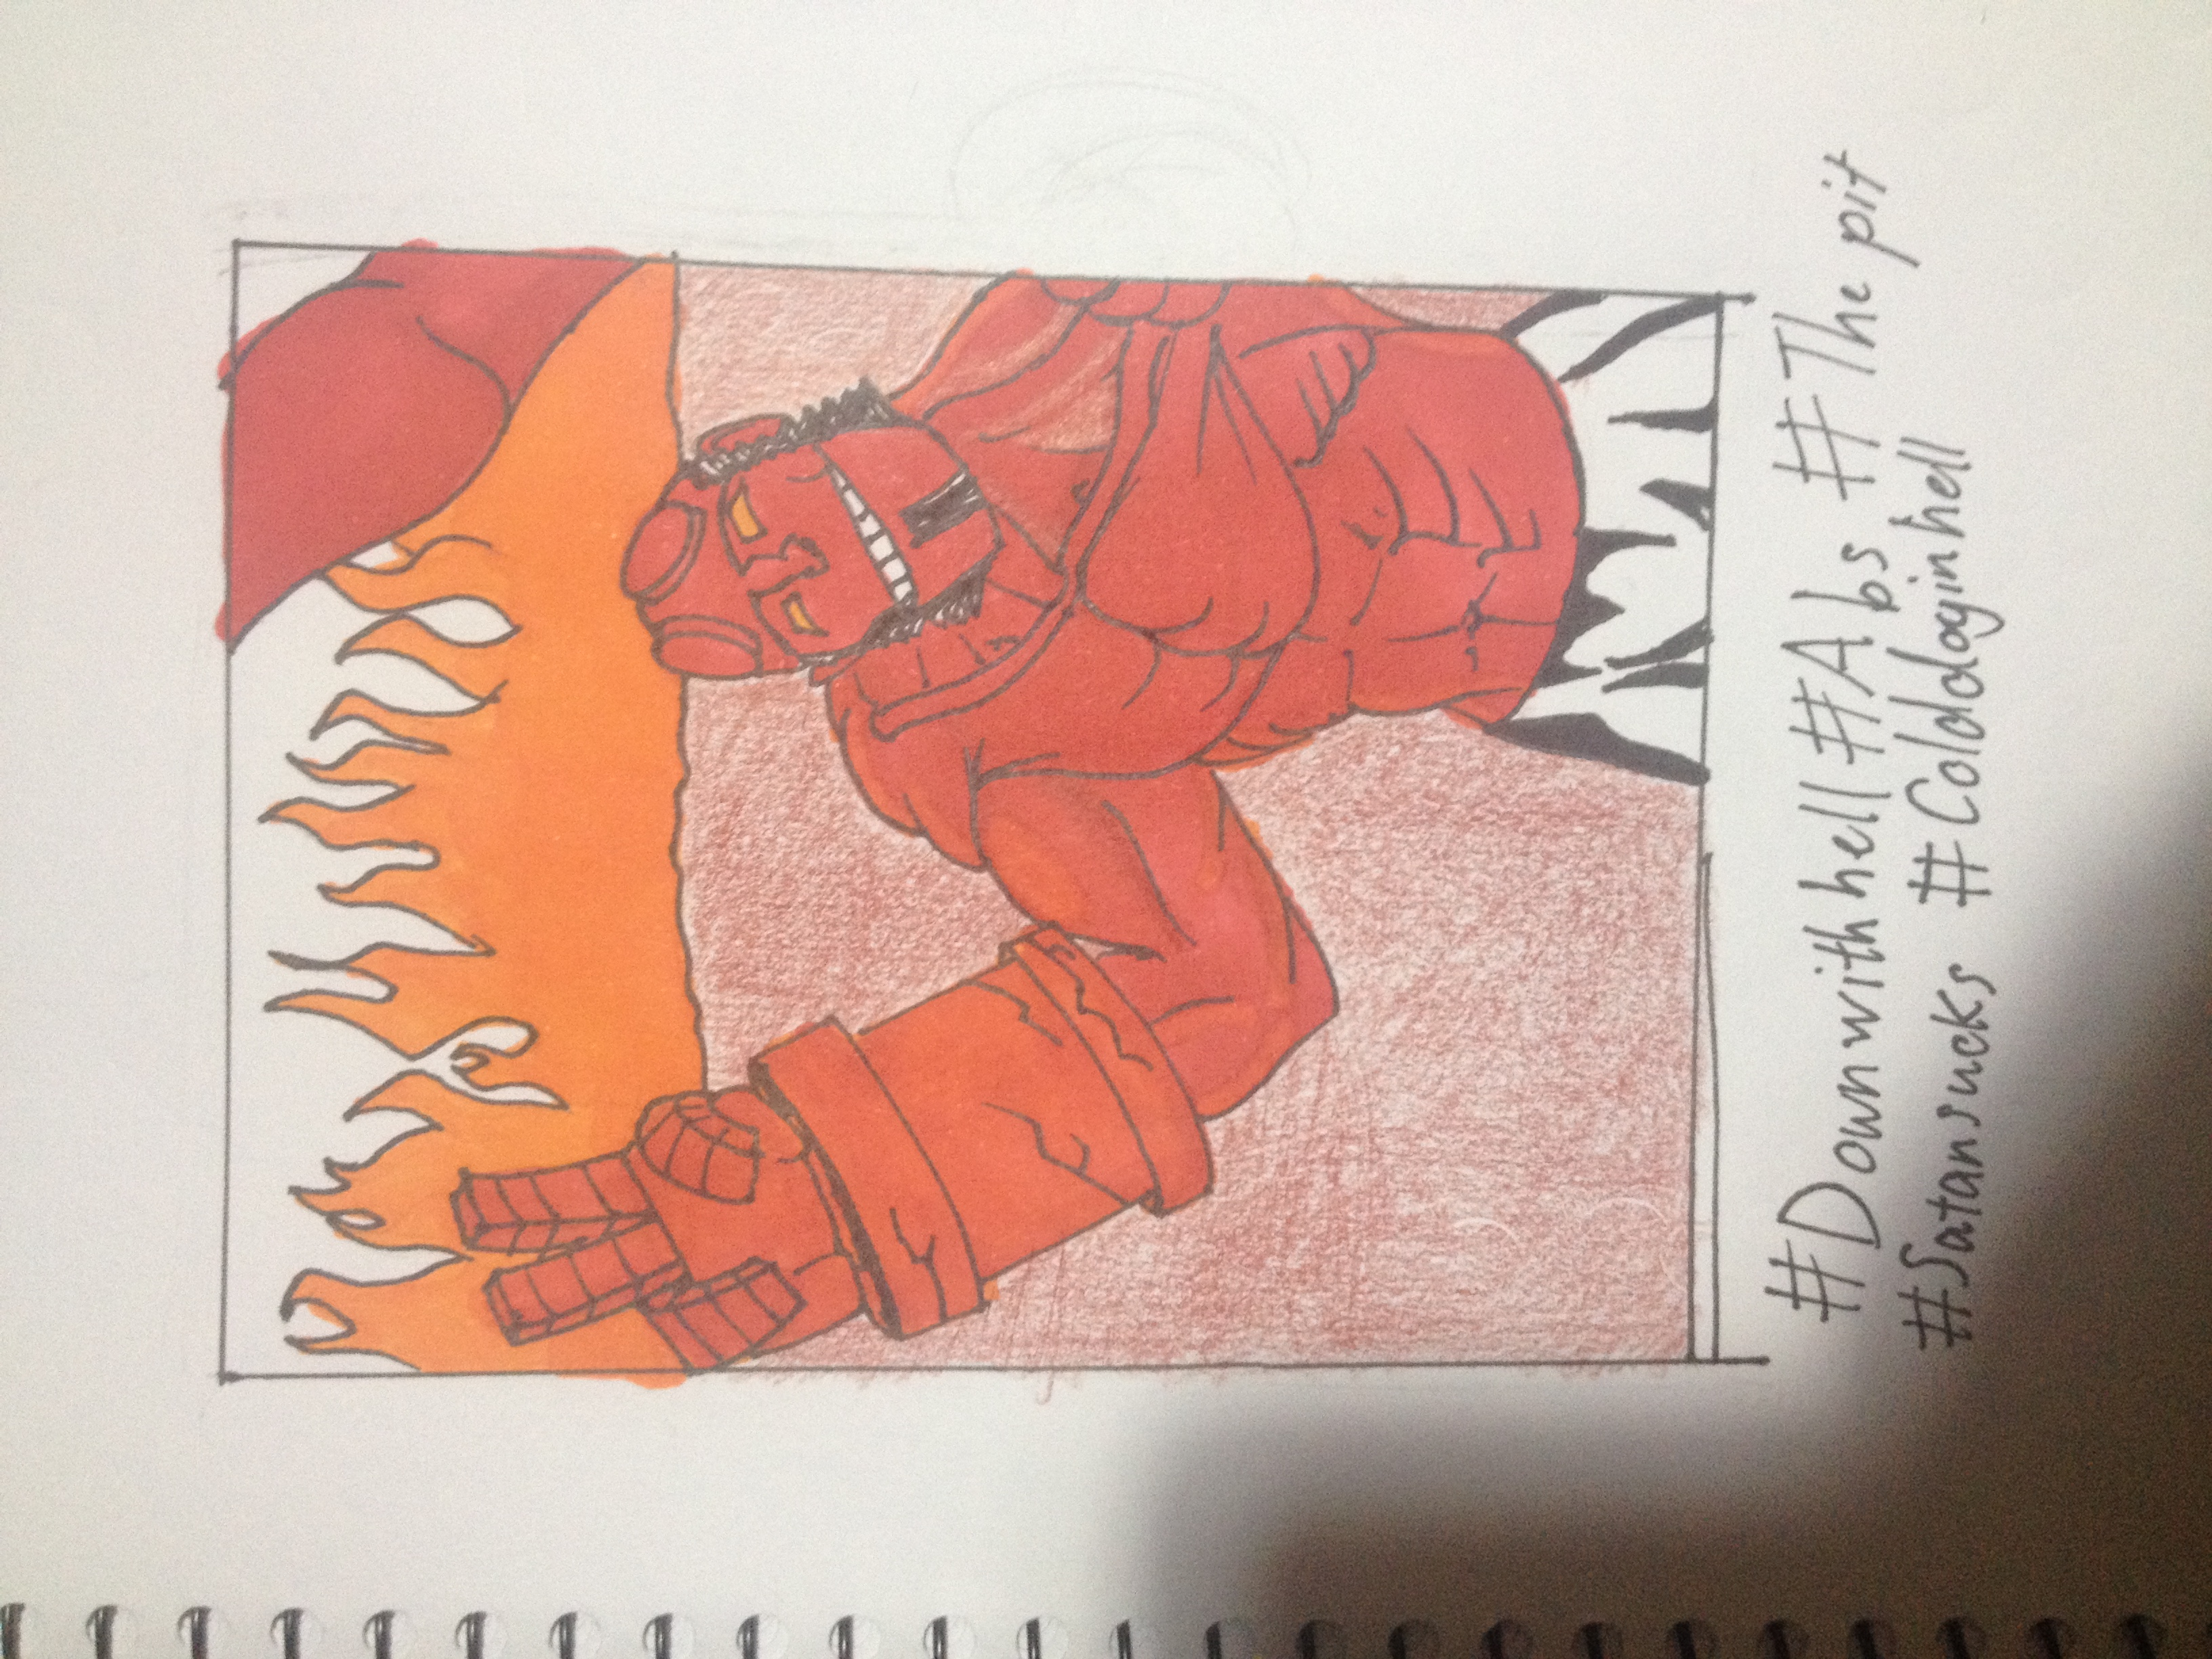 Hellboy goes to hell